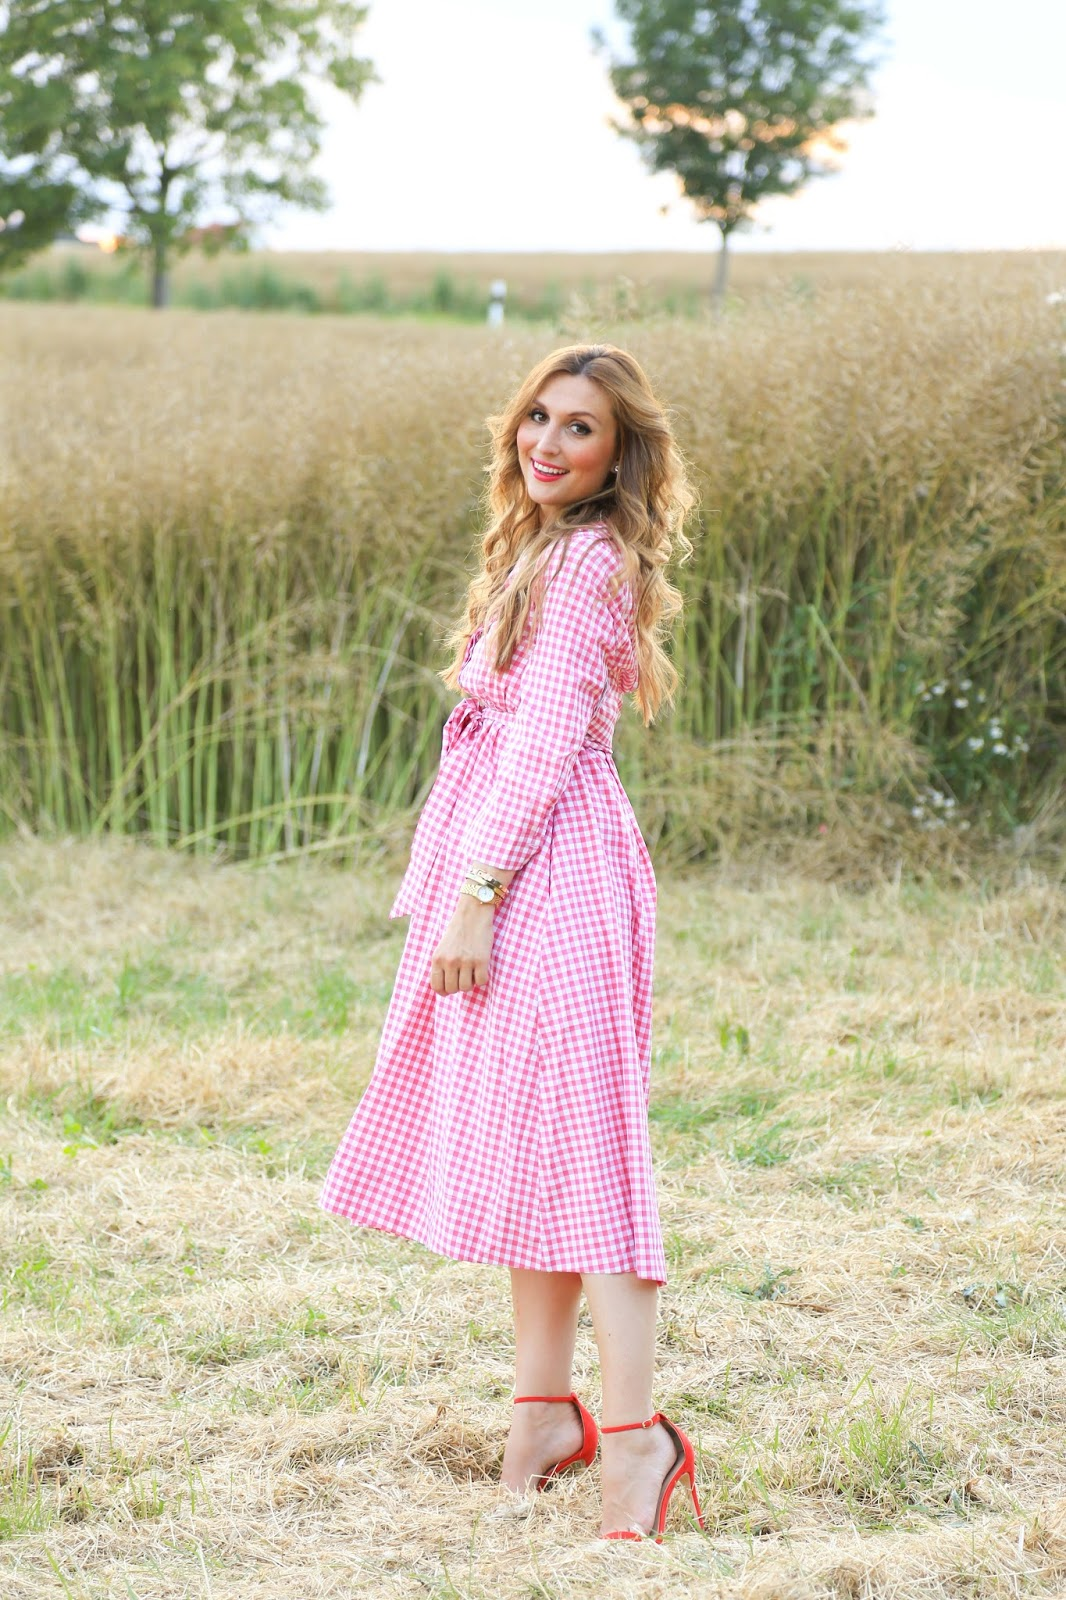 Fashionblogger aus Deutschland - Country Blogger - Blogger im Country Style - Country Look - Rosa Karo Kleid